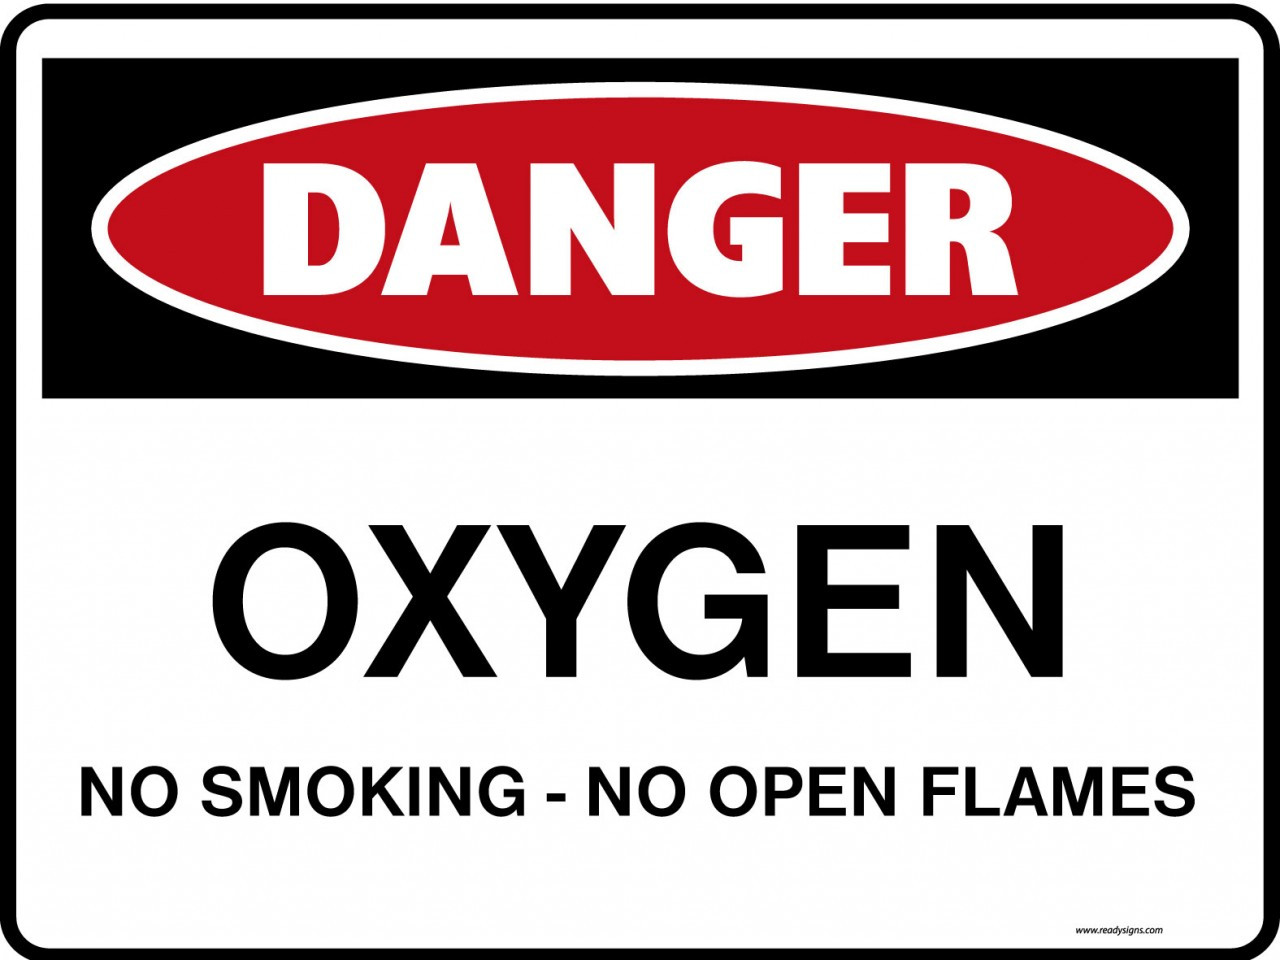 graphic about No Smoking Sign Printable referred to as Possibility Signs or symptoms - Oxygen No Smoking cigarettes Open up Flames